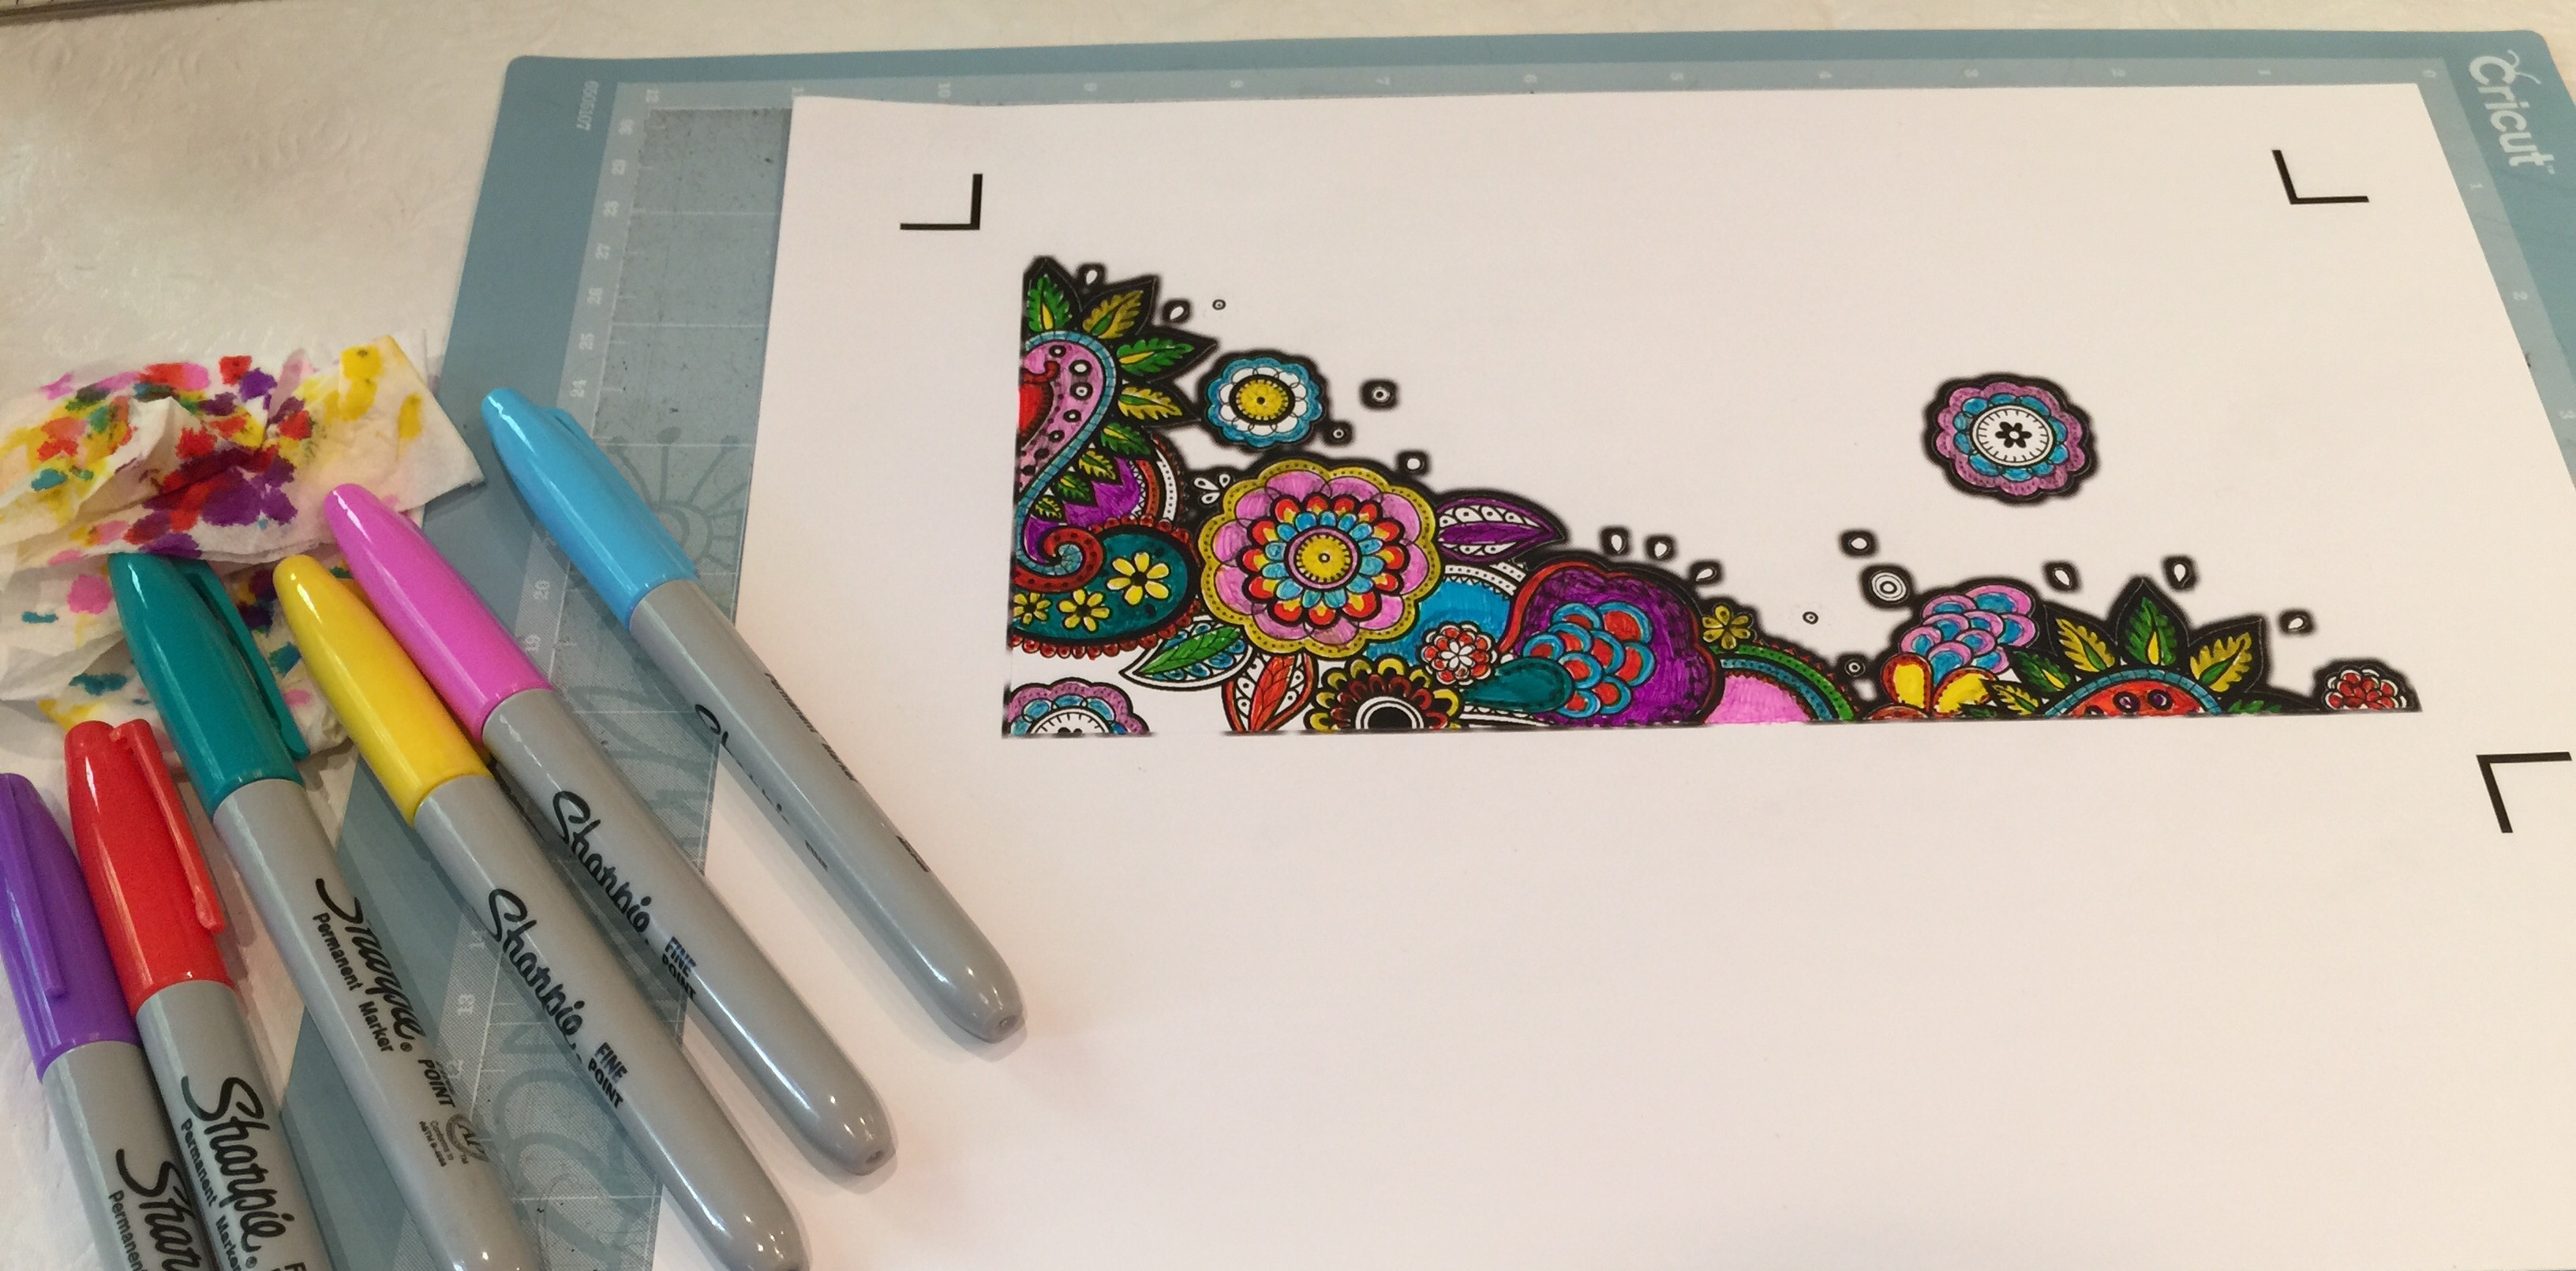 The coloring book vinyl - Since You Will Have Used An Ink Jet Printer Required For Cricut Printable Vinyl Let The Ink Dry A Few Minutes Before You Start Coloring